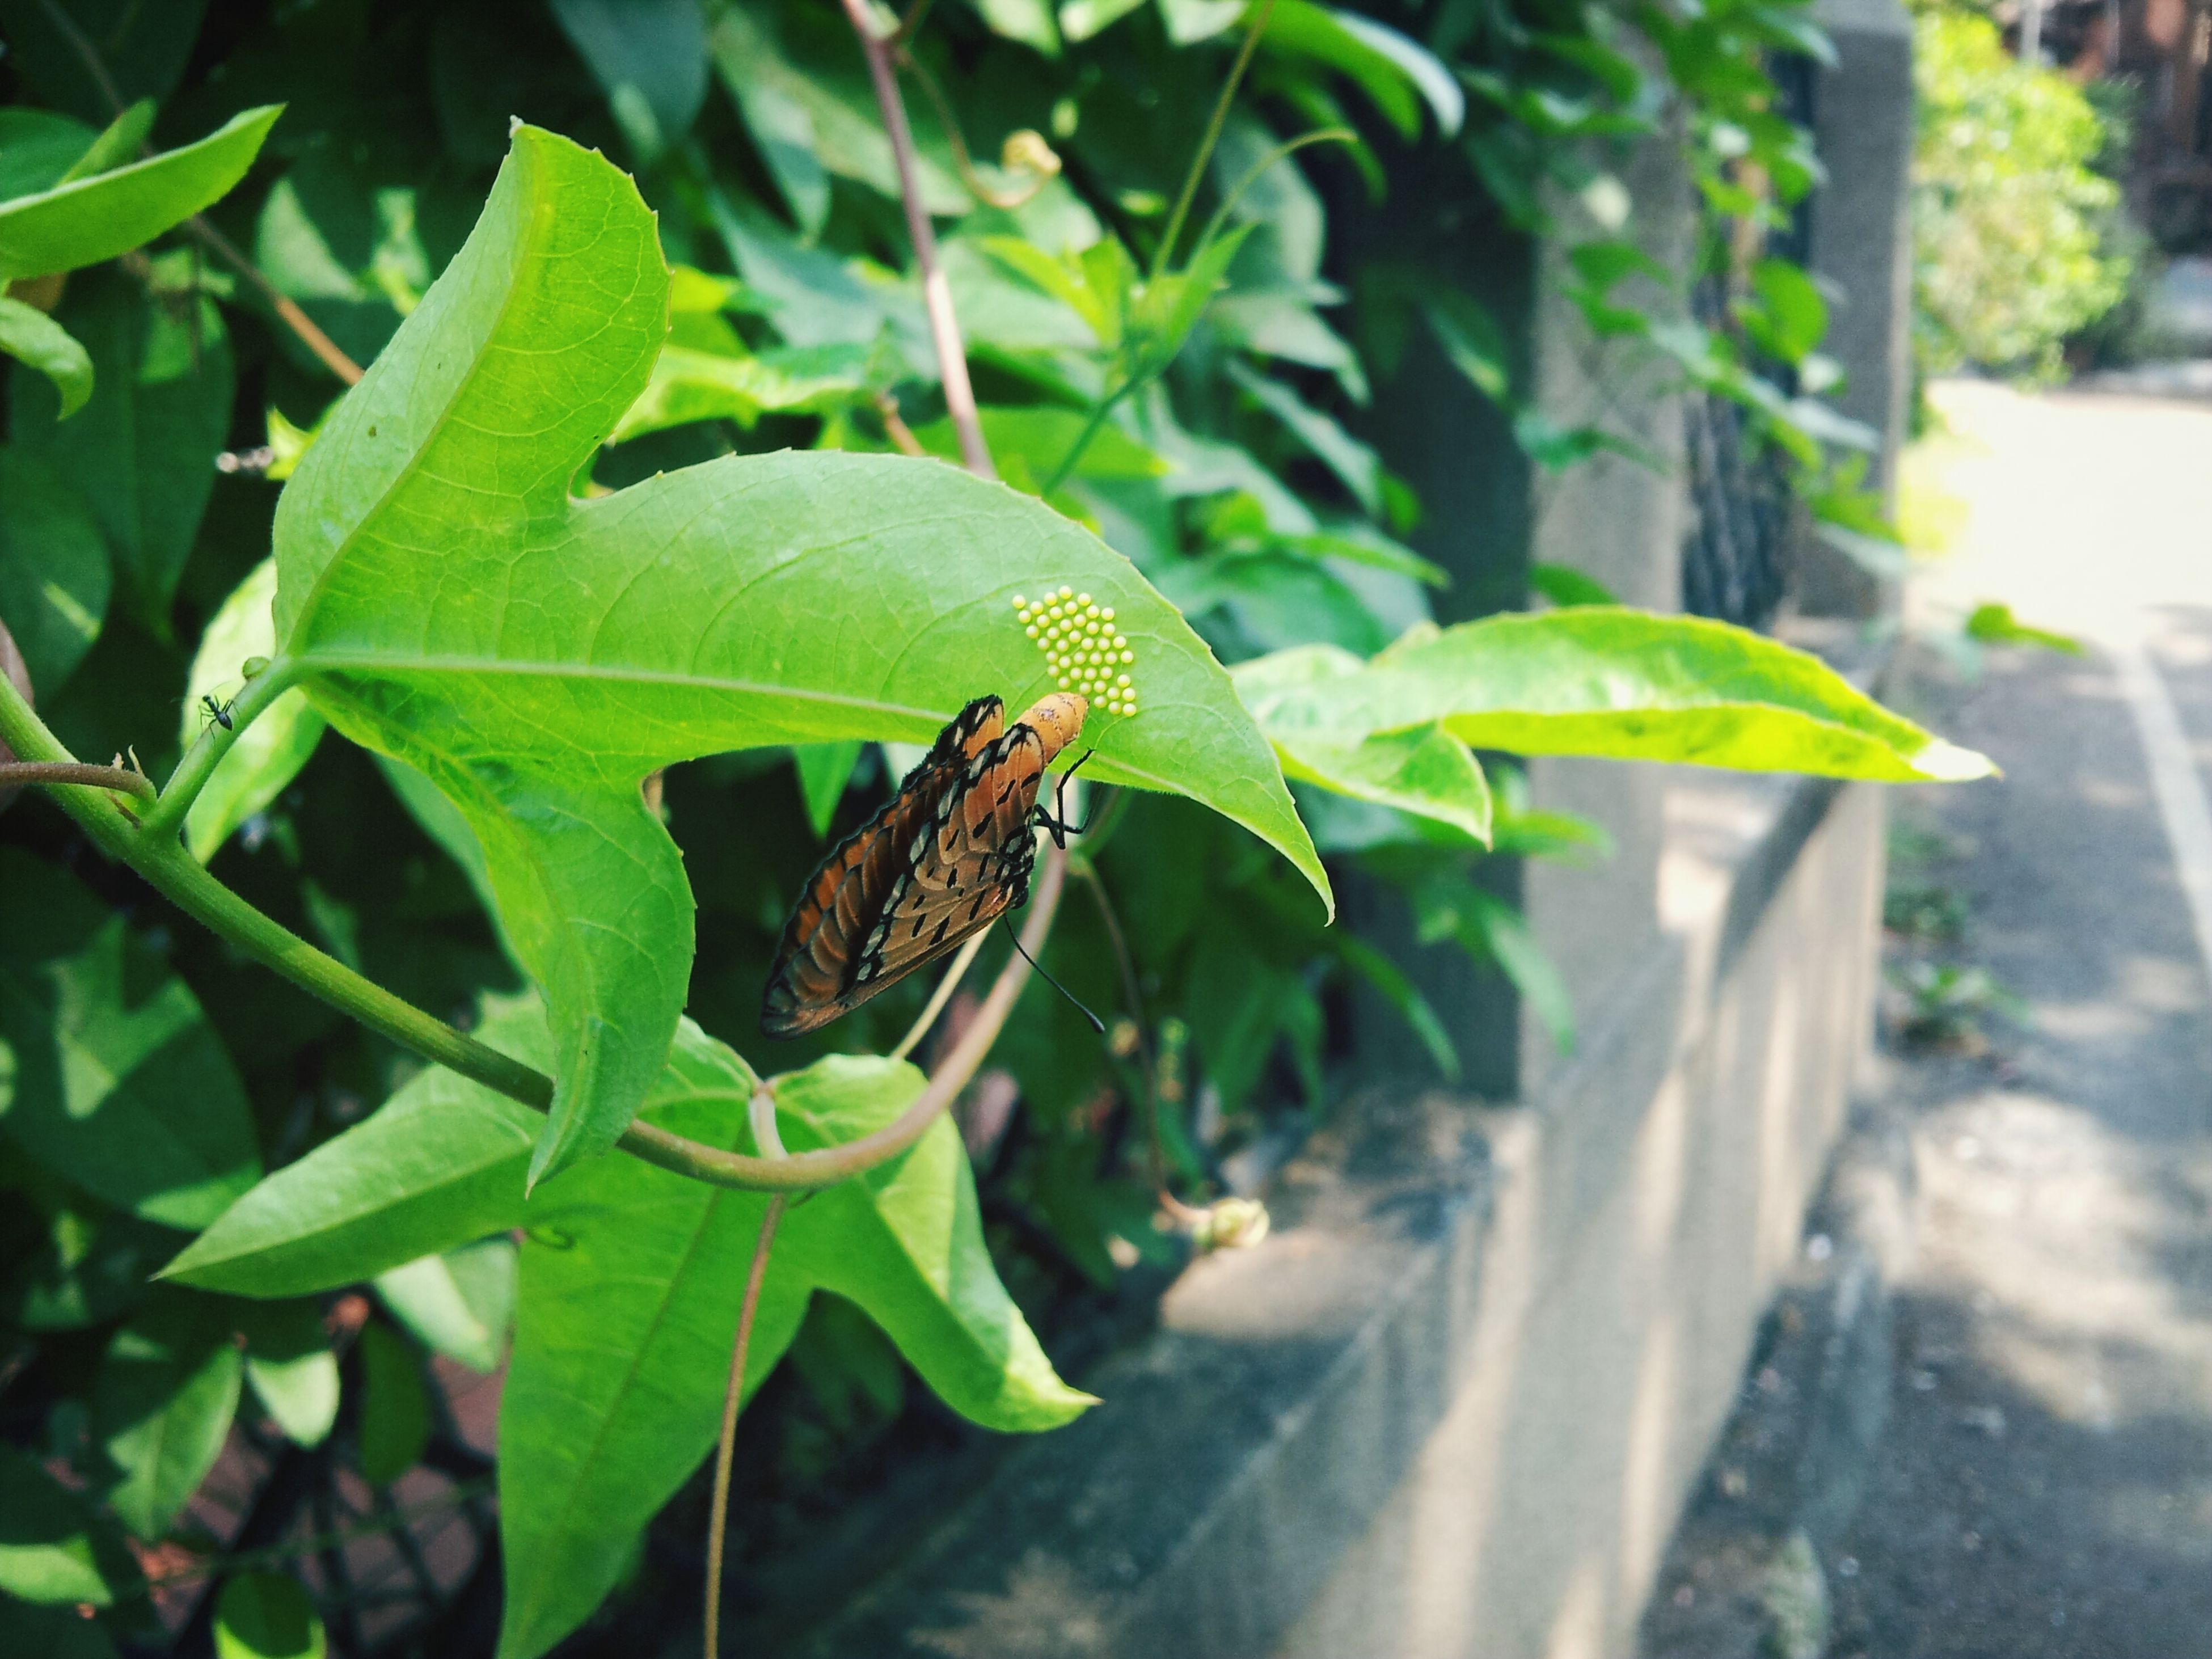 one animal, animals in the wild, animal themes, wildlife, insect, leaf, green color, butterfly - insect, close-up, focus on foreground, plant, nature, full length, perching, butterfly, animal antenna, beauty in nature, natural pattern, outdoors, high angle view